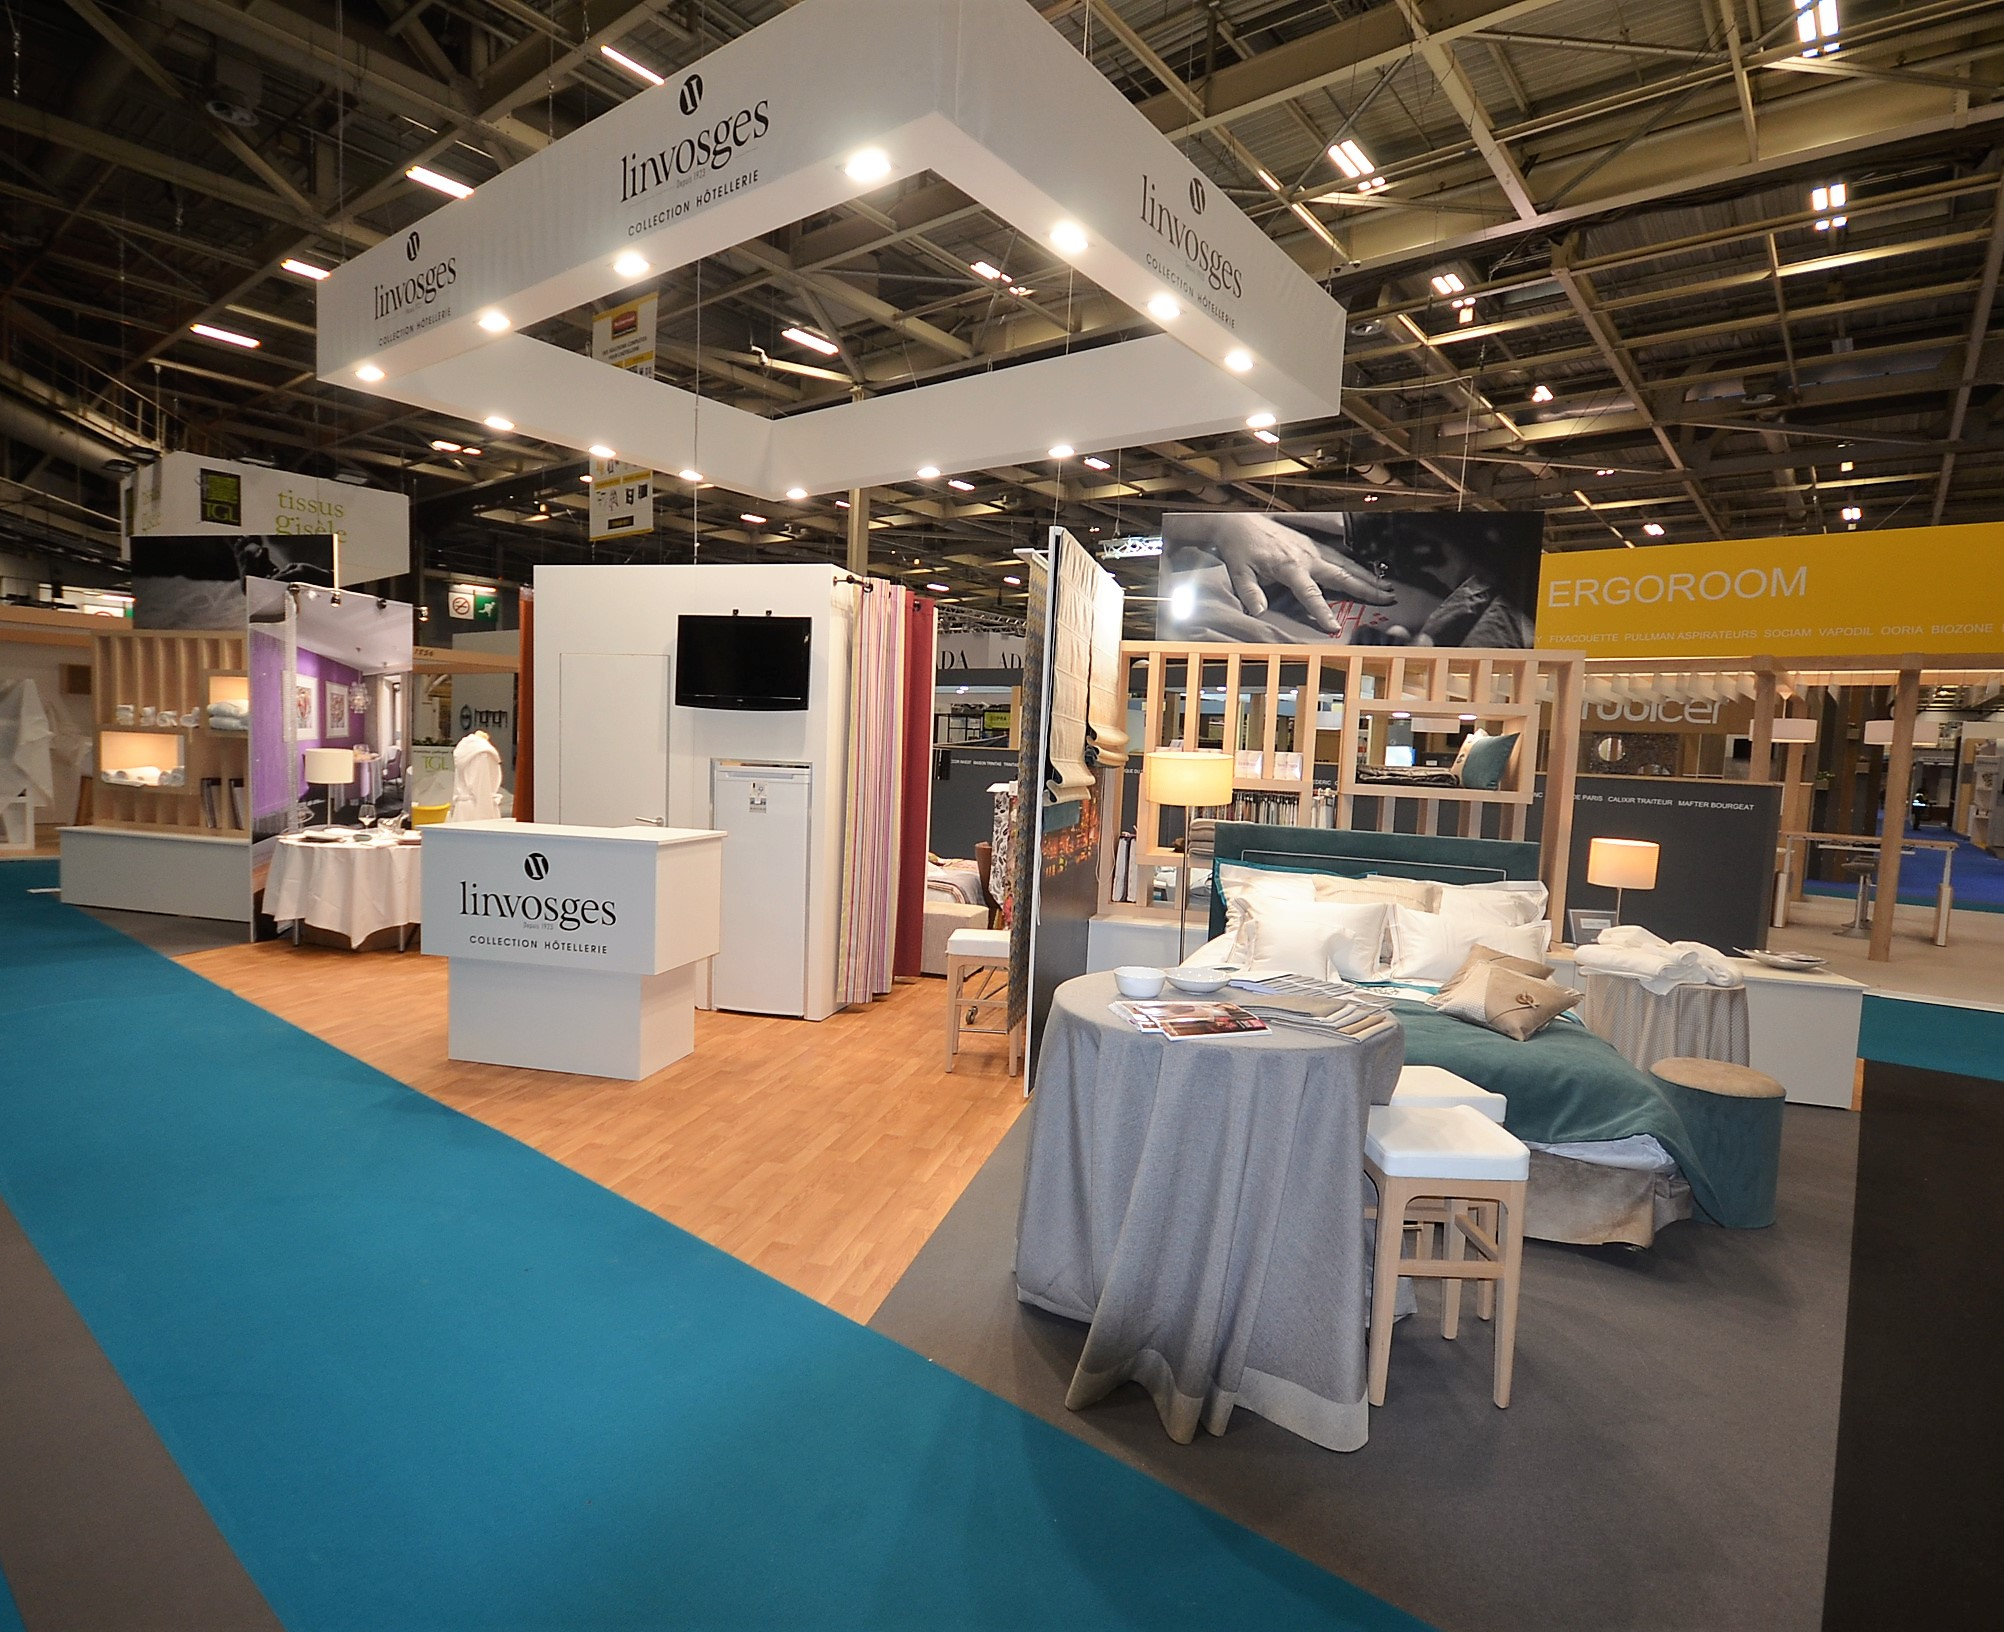 Stand Linvosges by aveca salon Equip Hotel